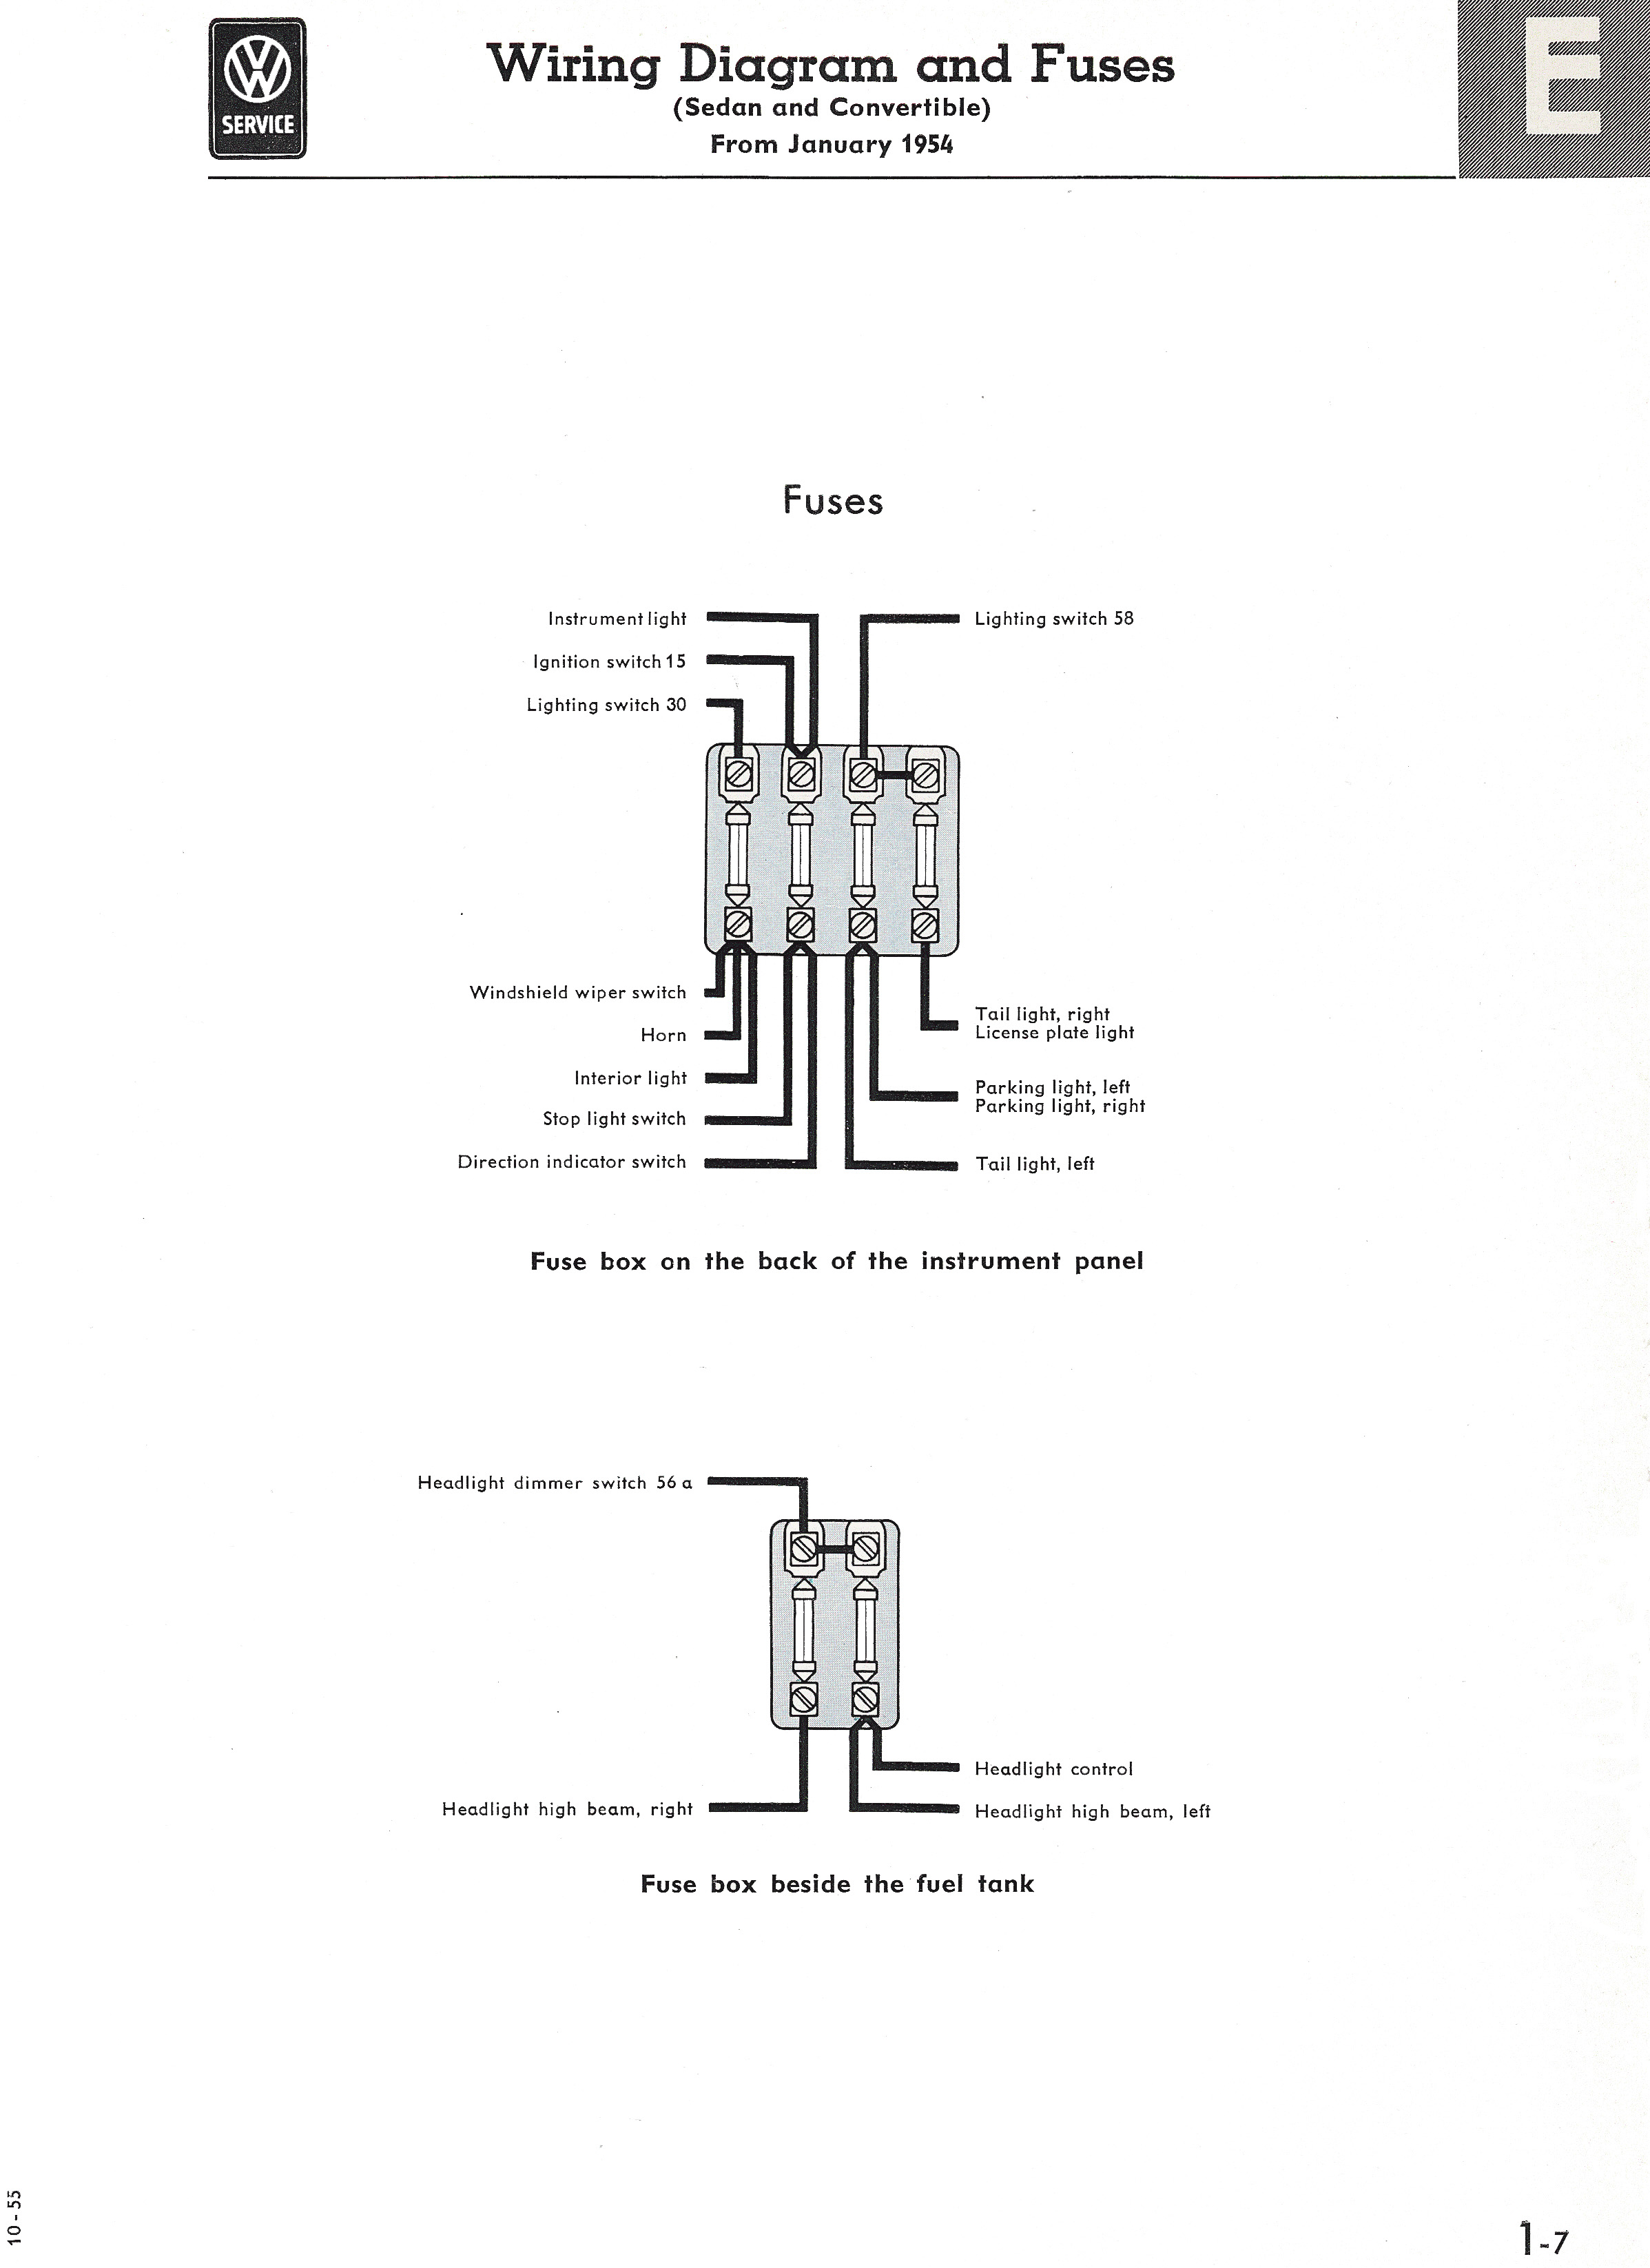 1965 ford wiring schematic thesamba com type 1 wiring diagrams  thesamba com type 1 wiring diagrams